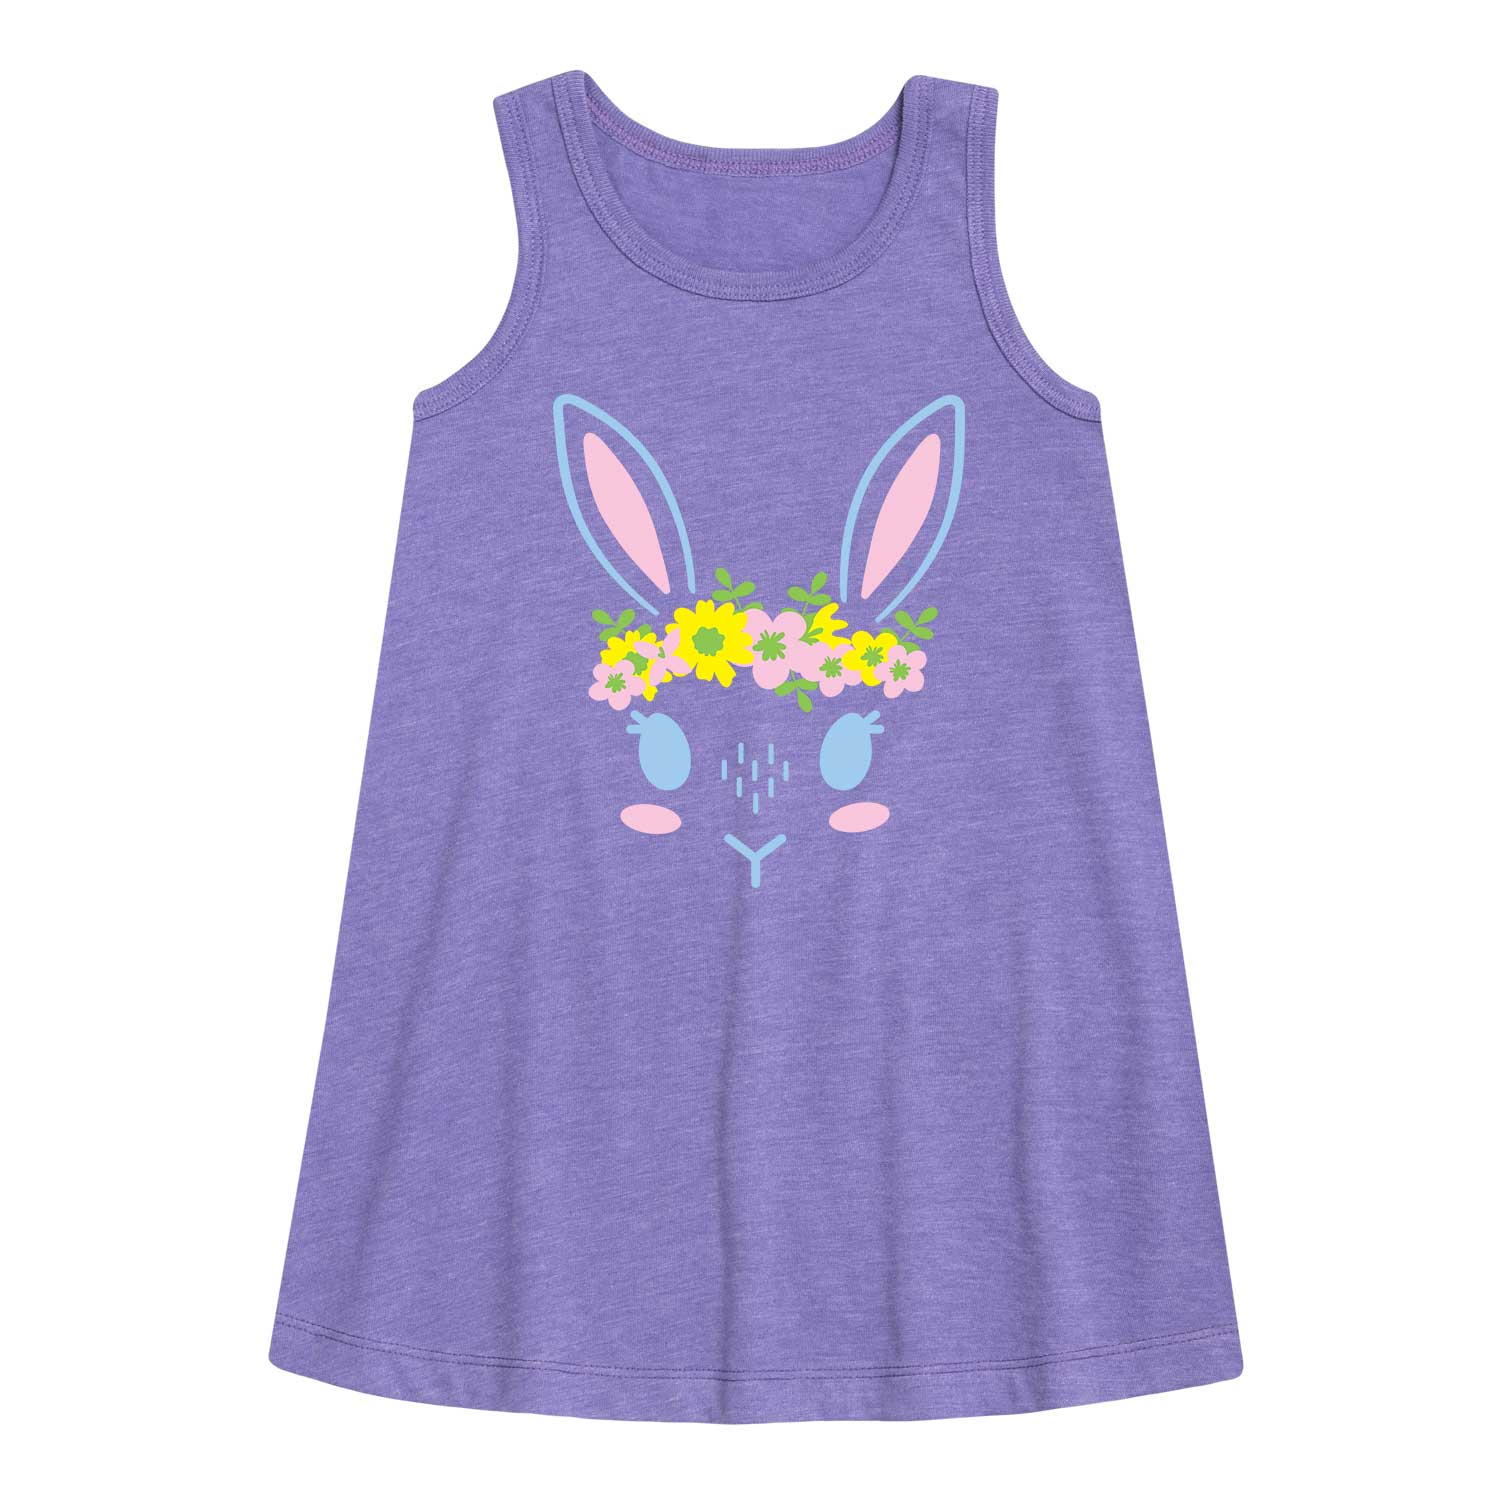 Bunny Face Floral Crown - Toddler Girl A-Line Dress